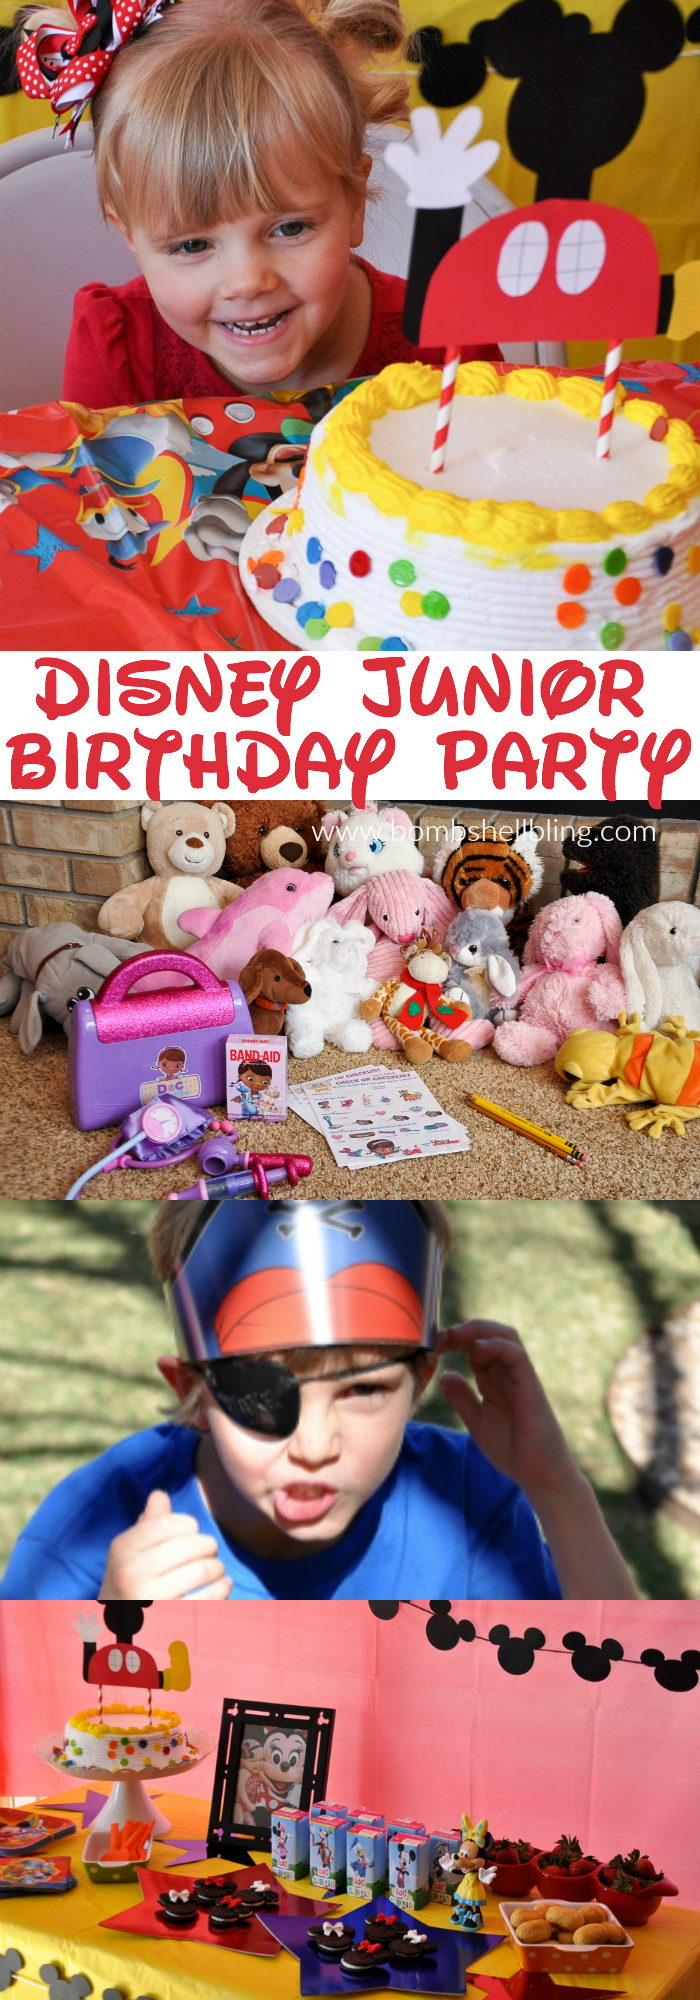 Disney Jr Birthday Party by Bombshell Bling